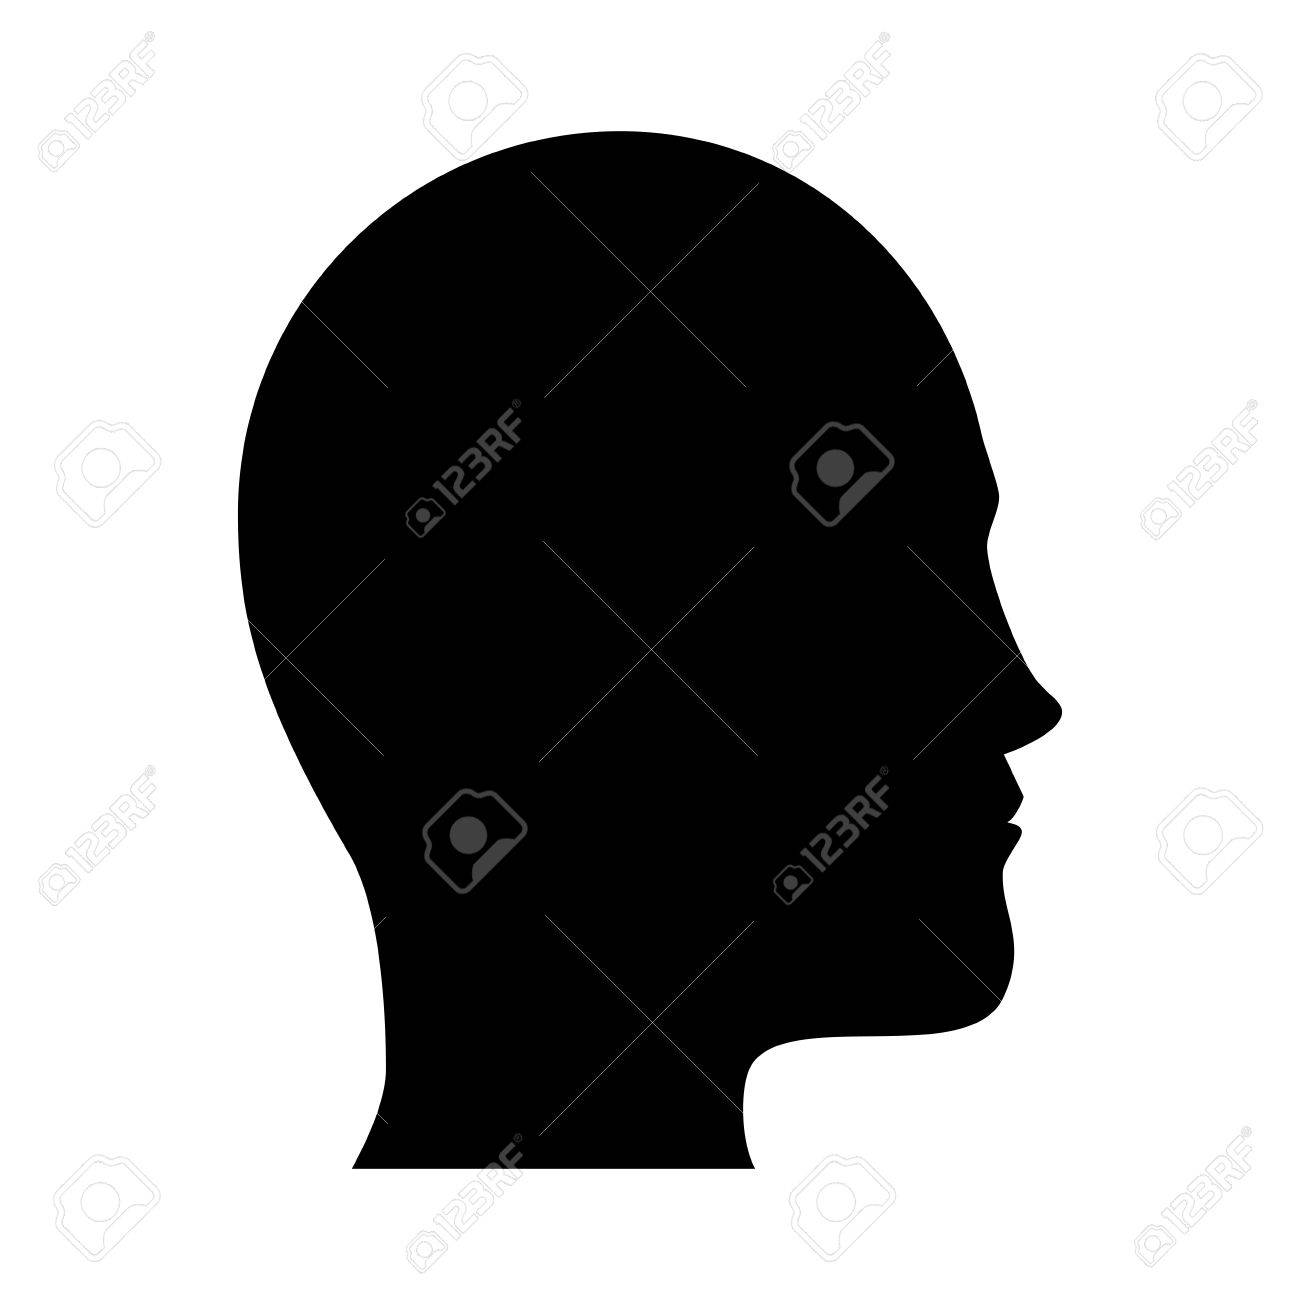 person side human man adult profile user black silhouette vector graphic isolated and flat illustration - 61150131